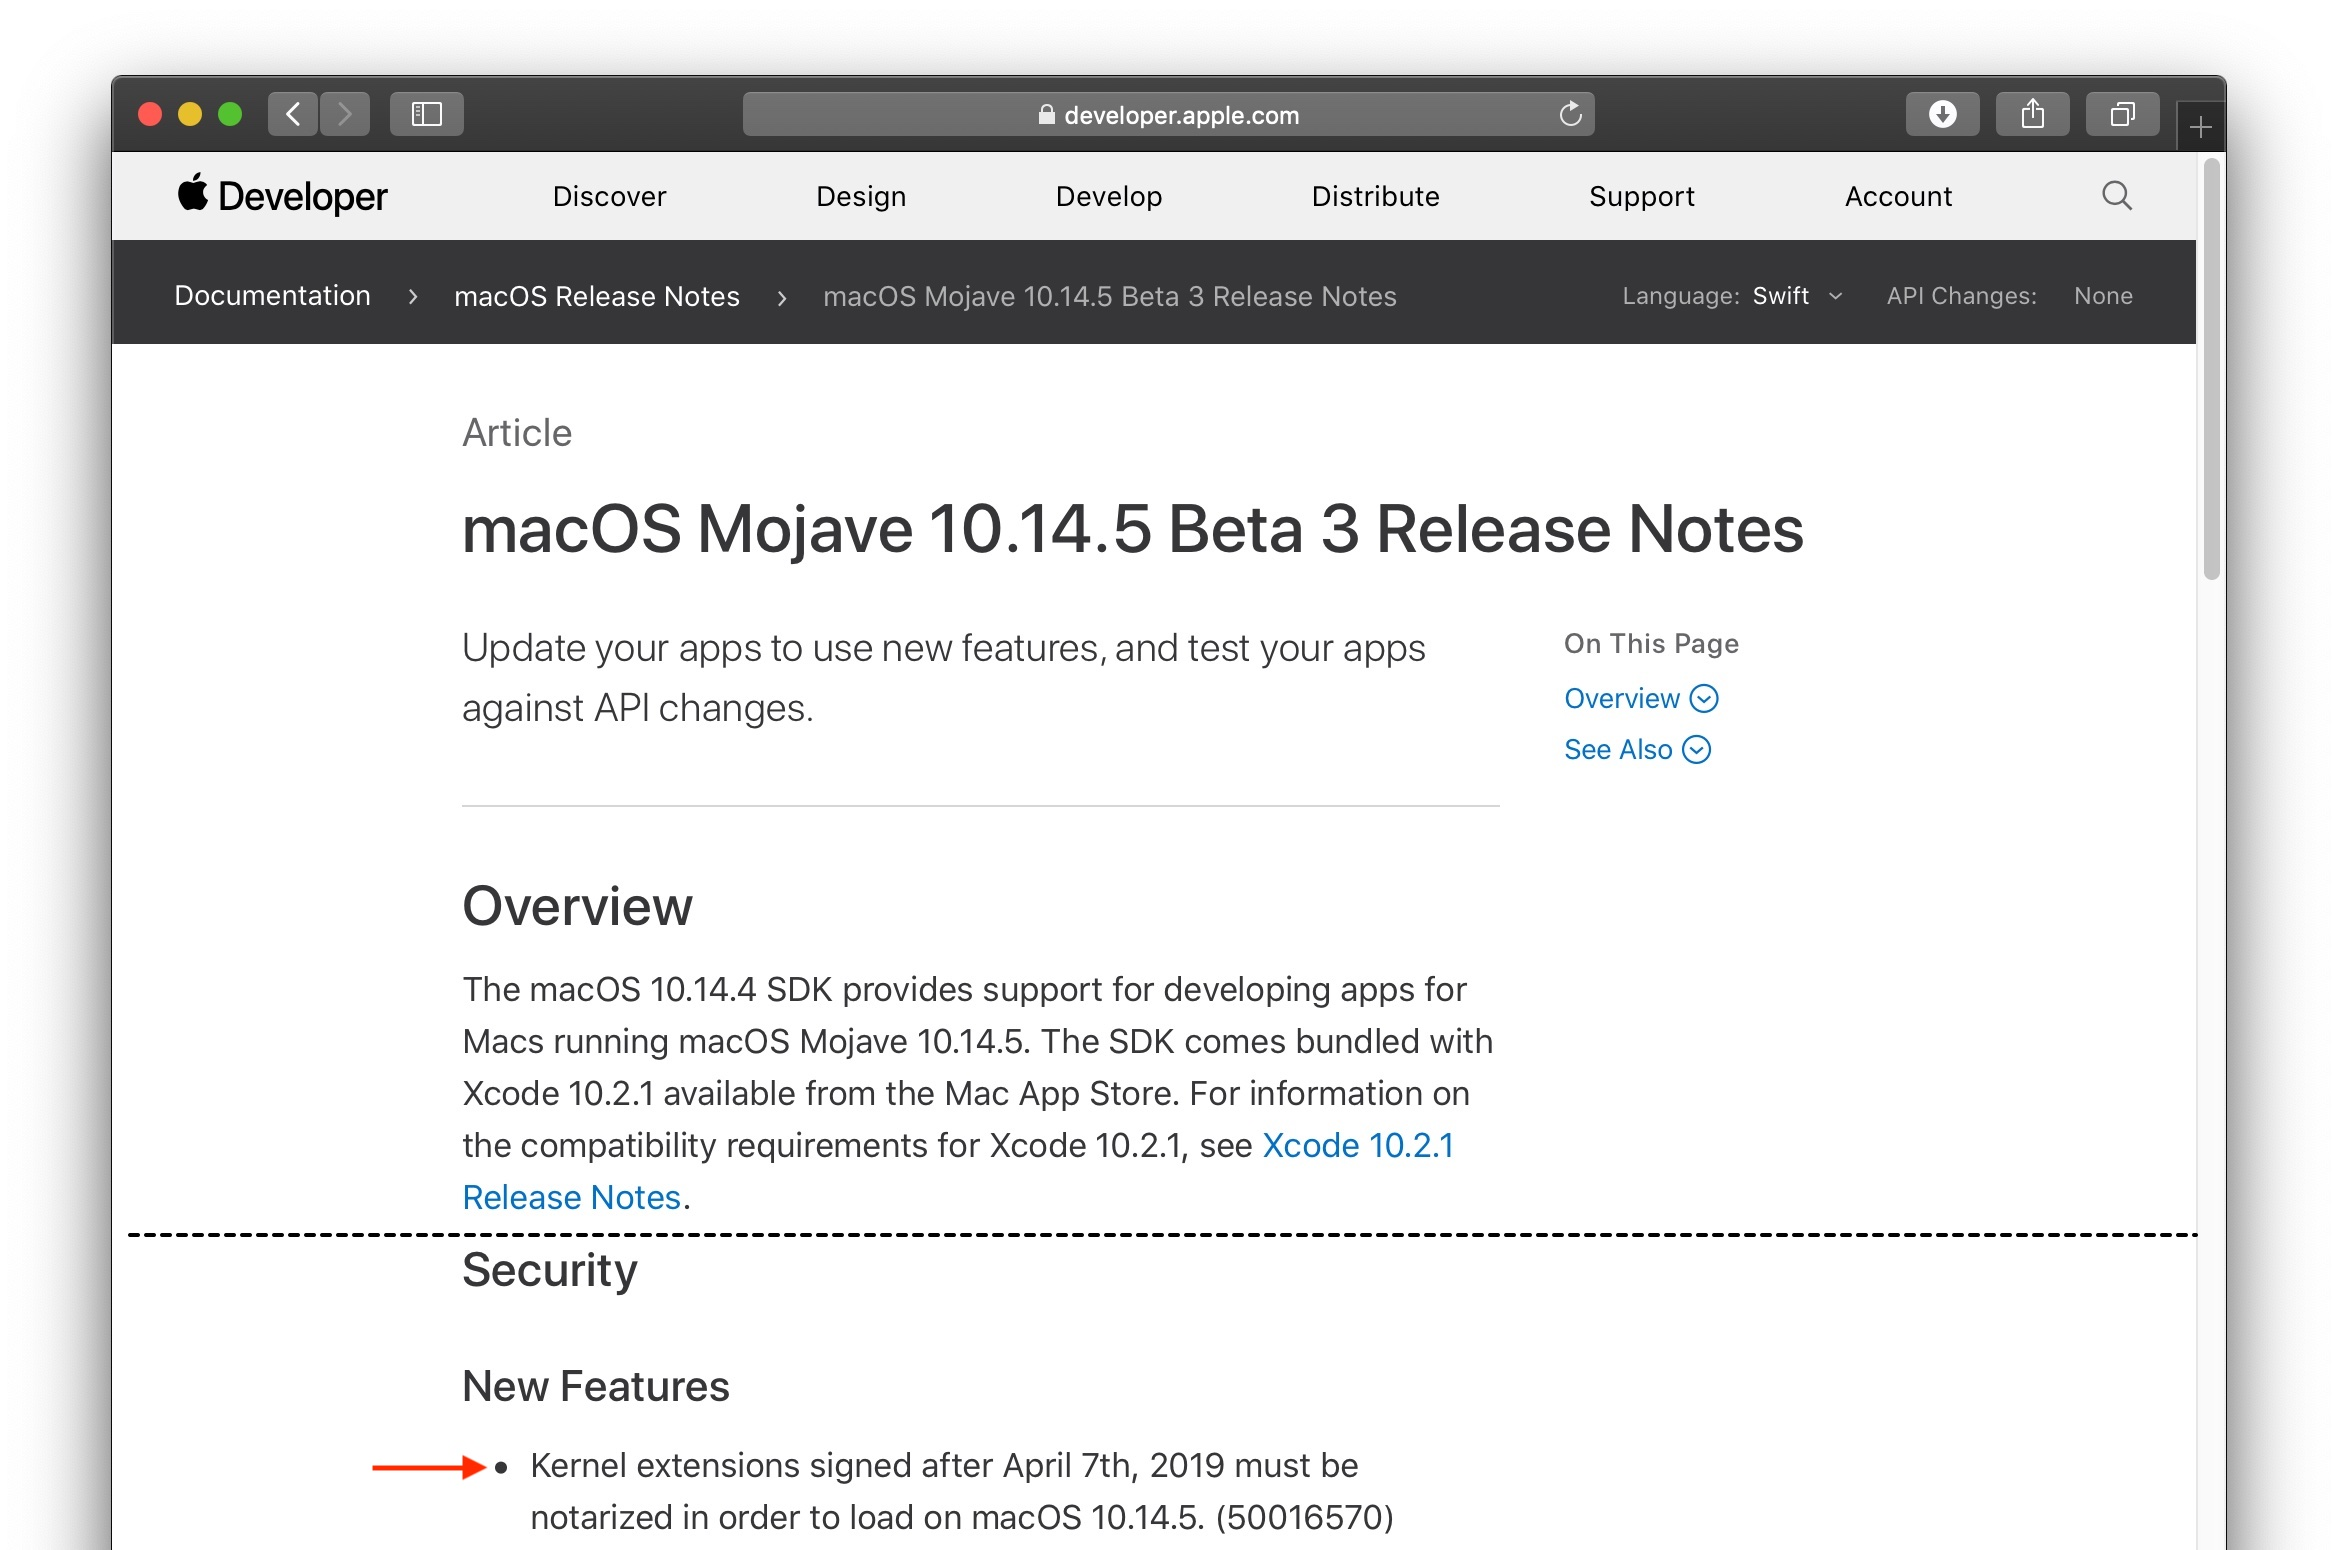 macOS Mojave 10.14.5 Beta Release Notes